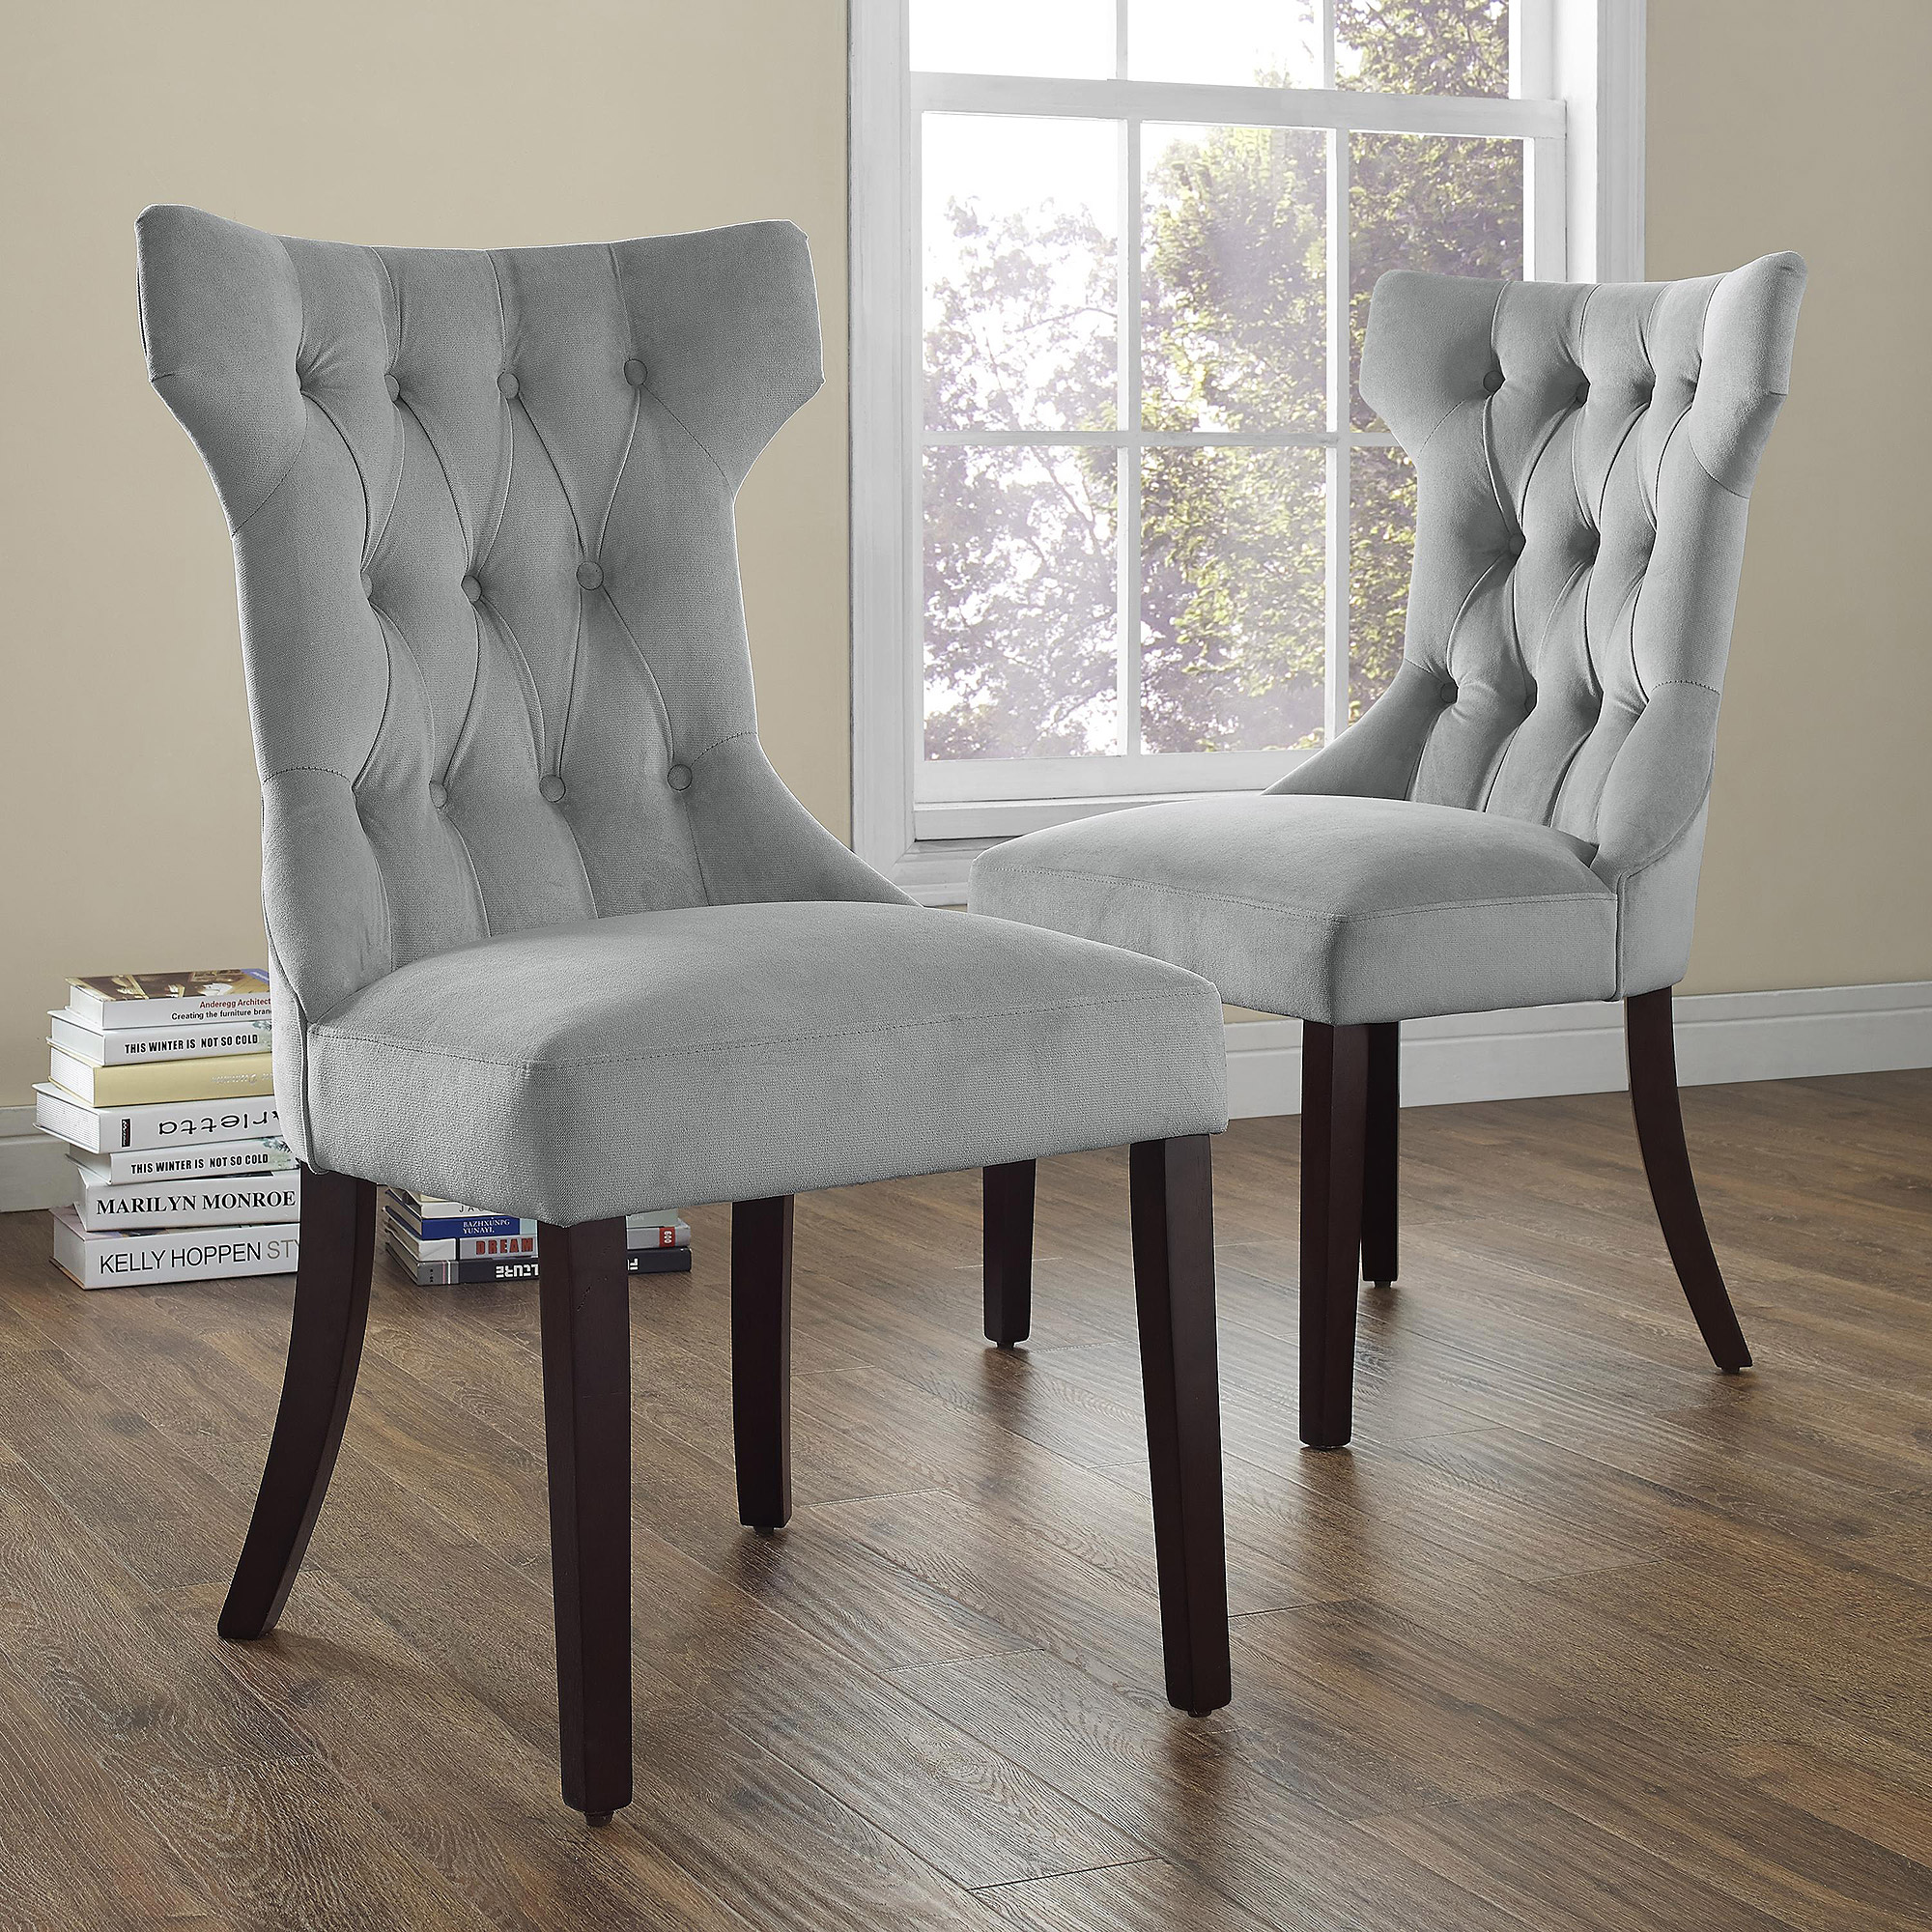 tufted accent chair. jofran stellach stella hand tufted accent